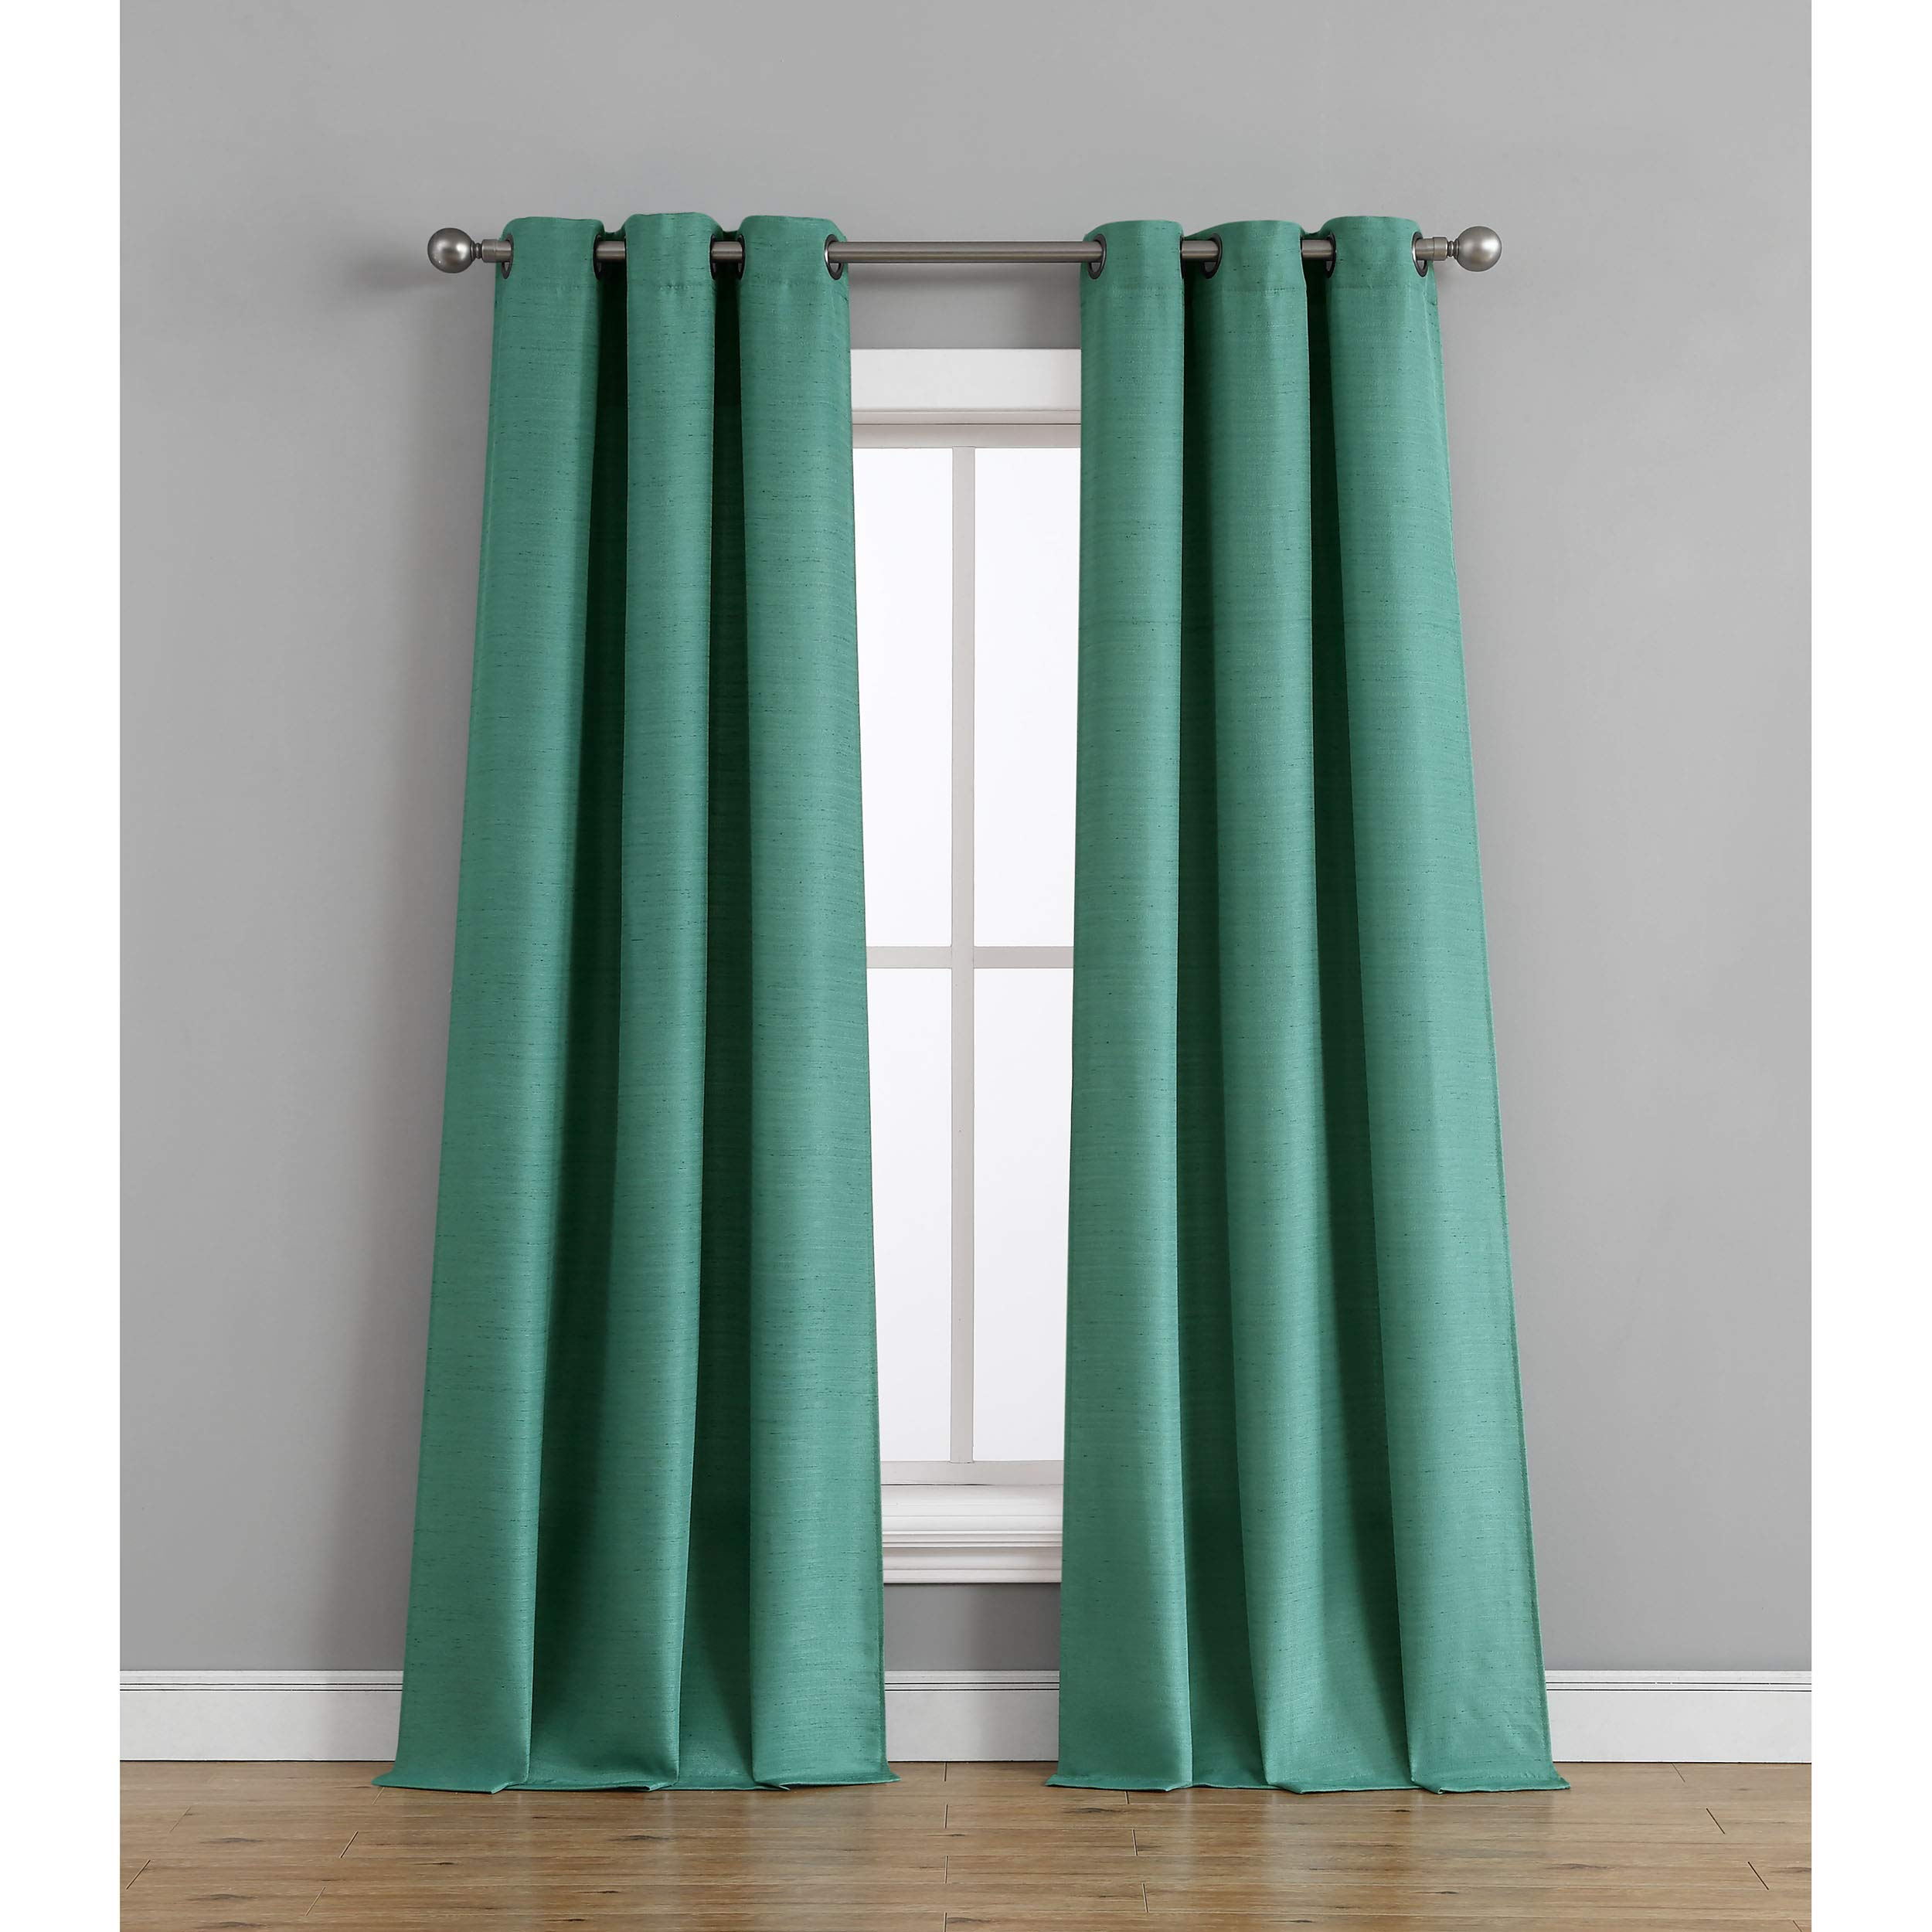 Tribeca Home Raw Faux Silk Curtain Panel Pair, 76 in. x 96 in, Teal